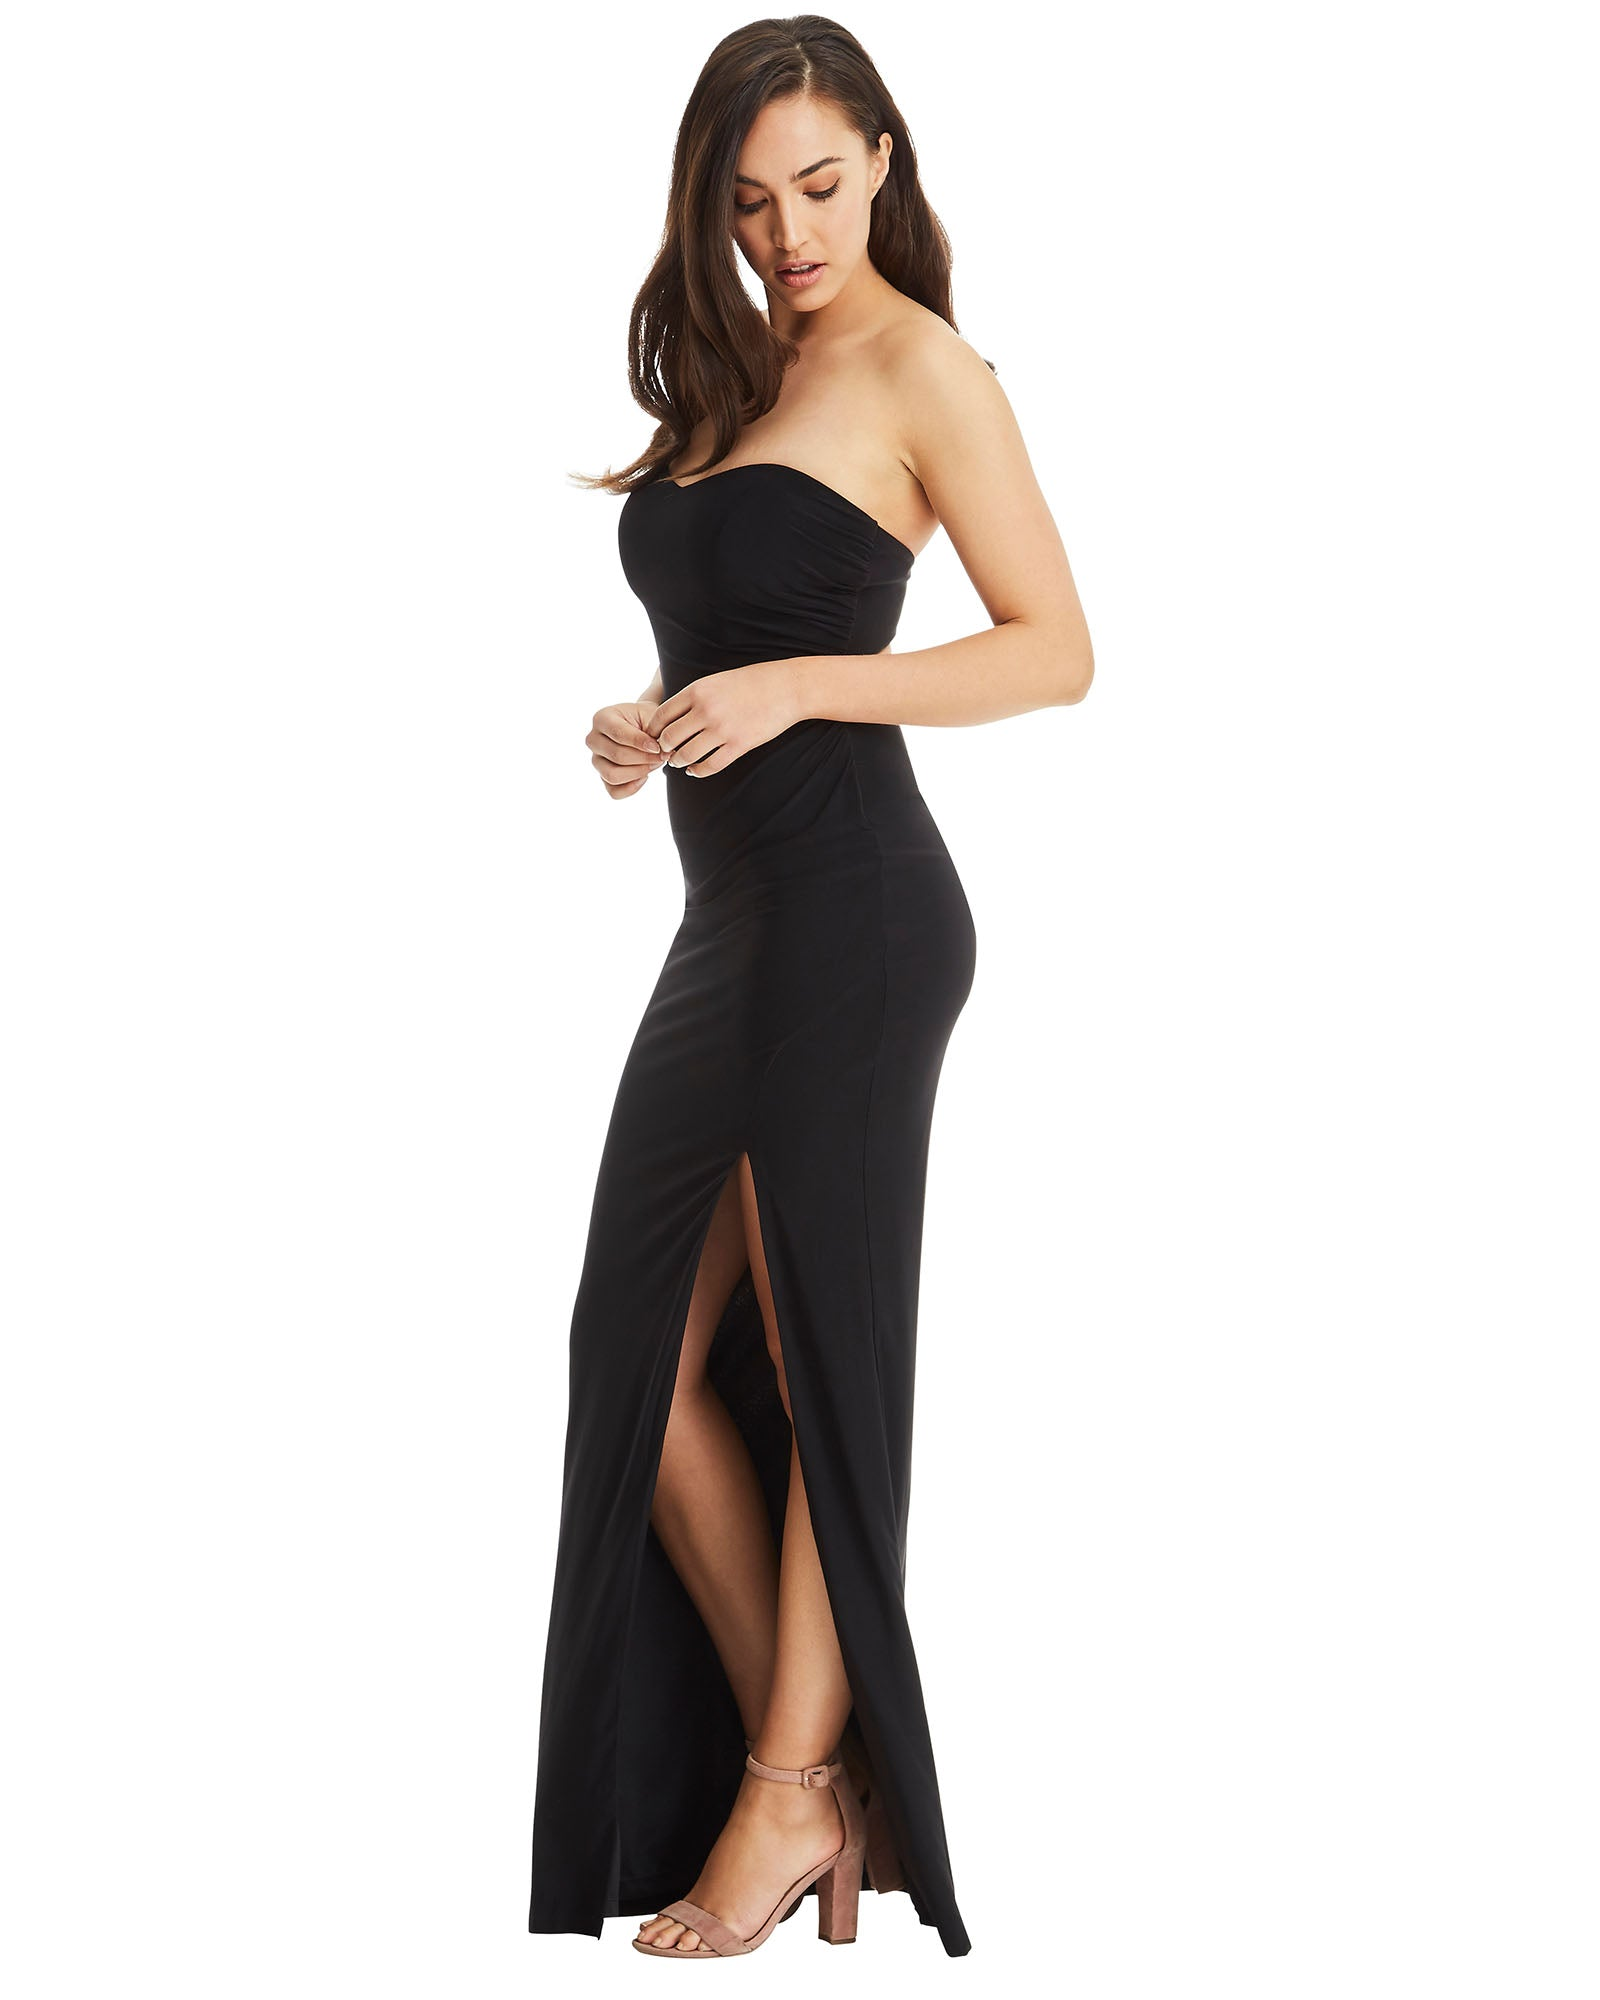 592019b8a0 strapless evening dress long black split gown open back sheath stretch  fabric